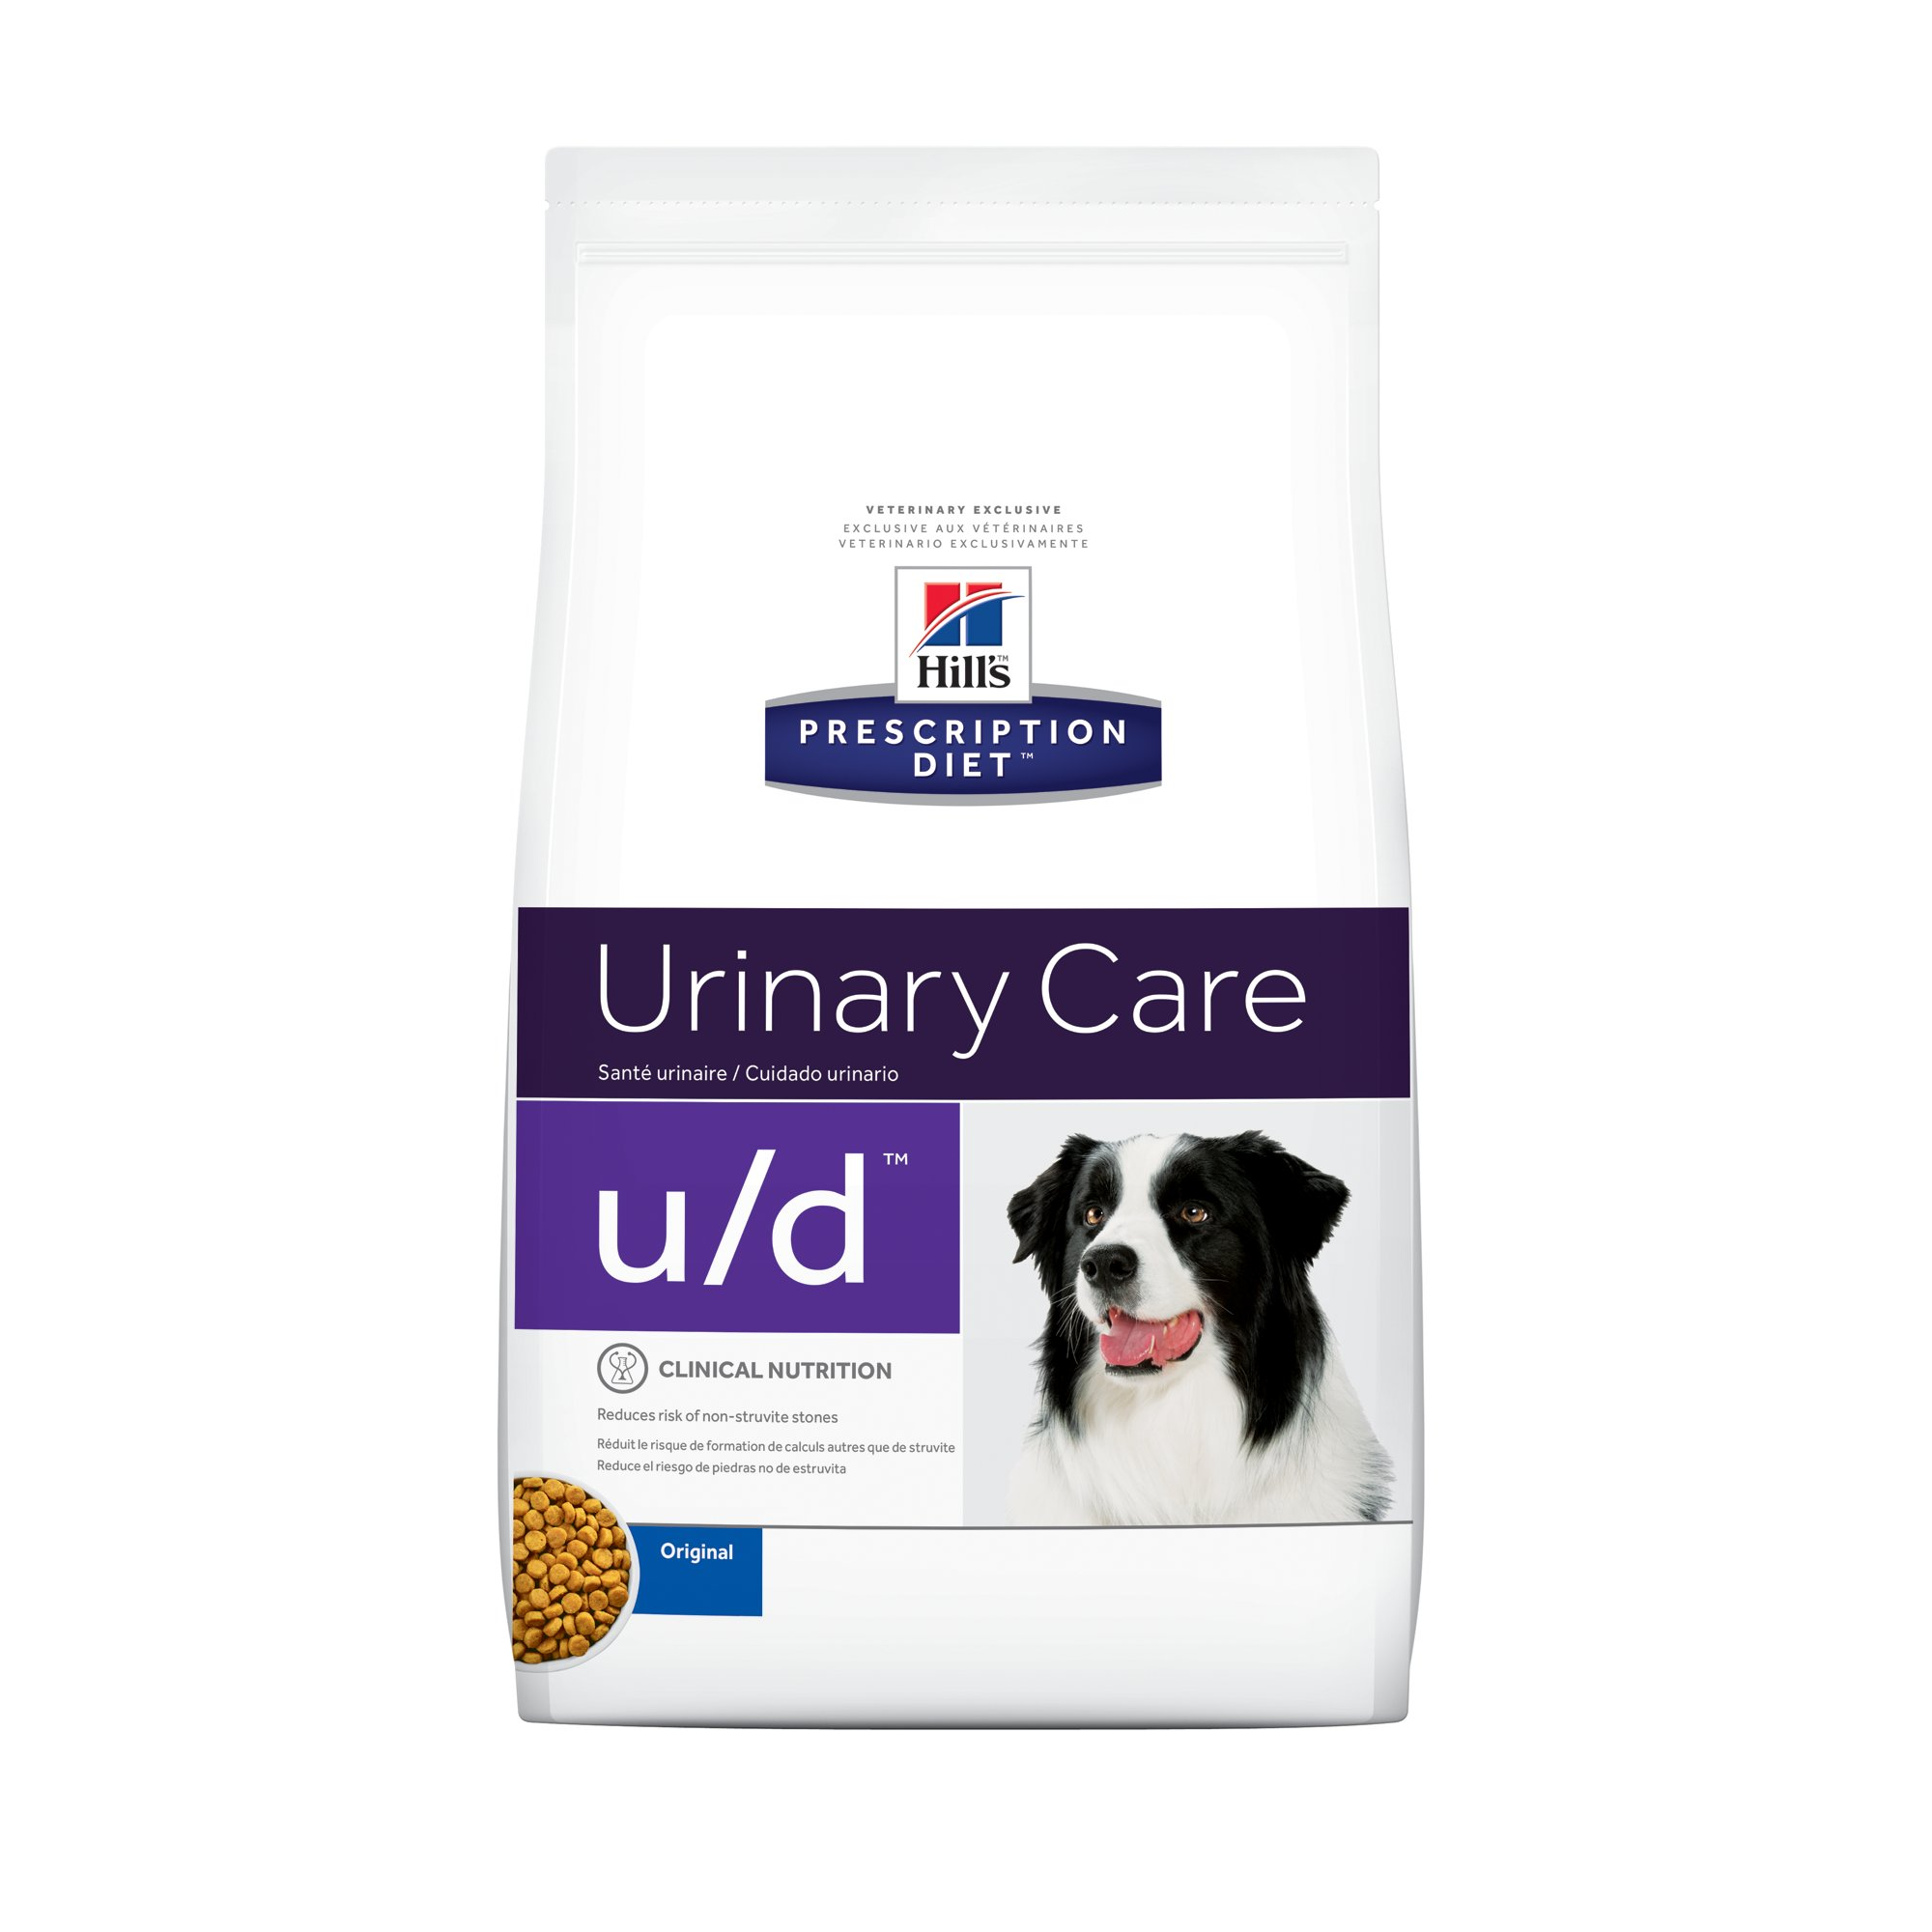 Hill's Prescription Diet u/d Urinary Care Original Dry Dog Food | Petco